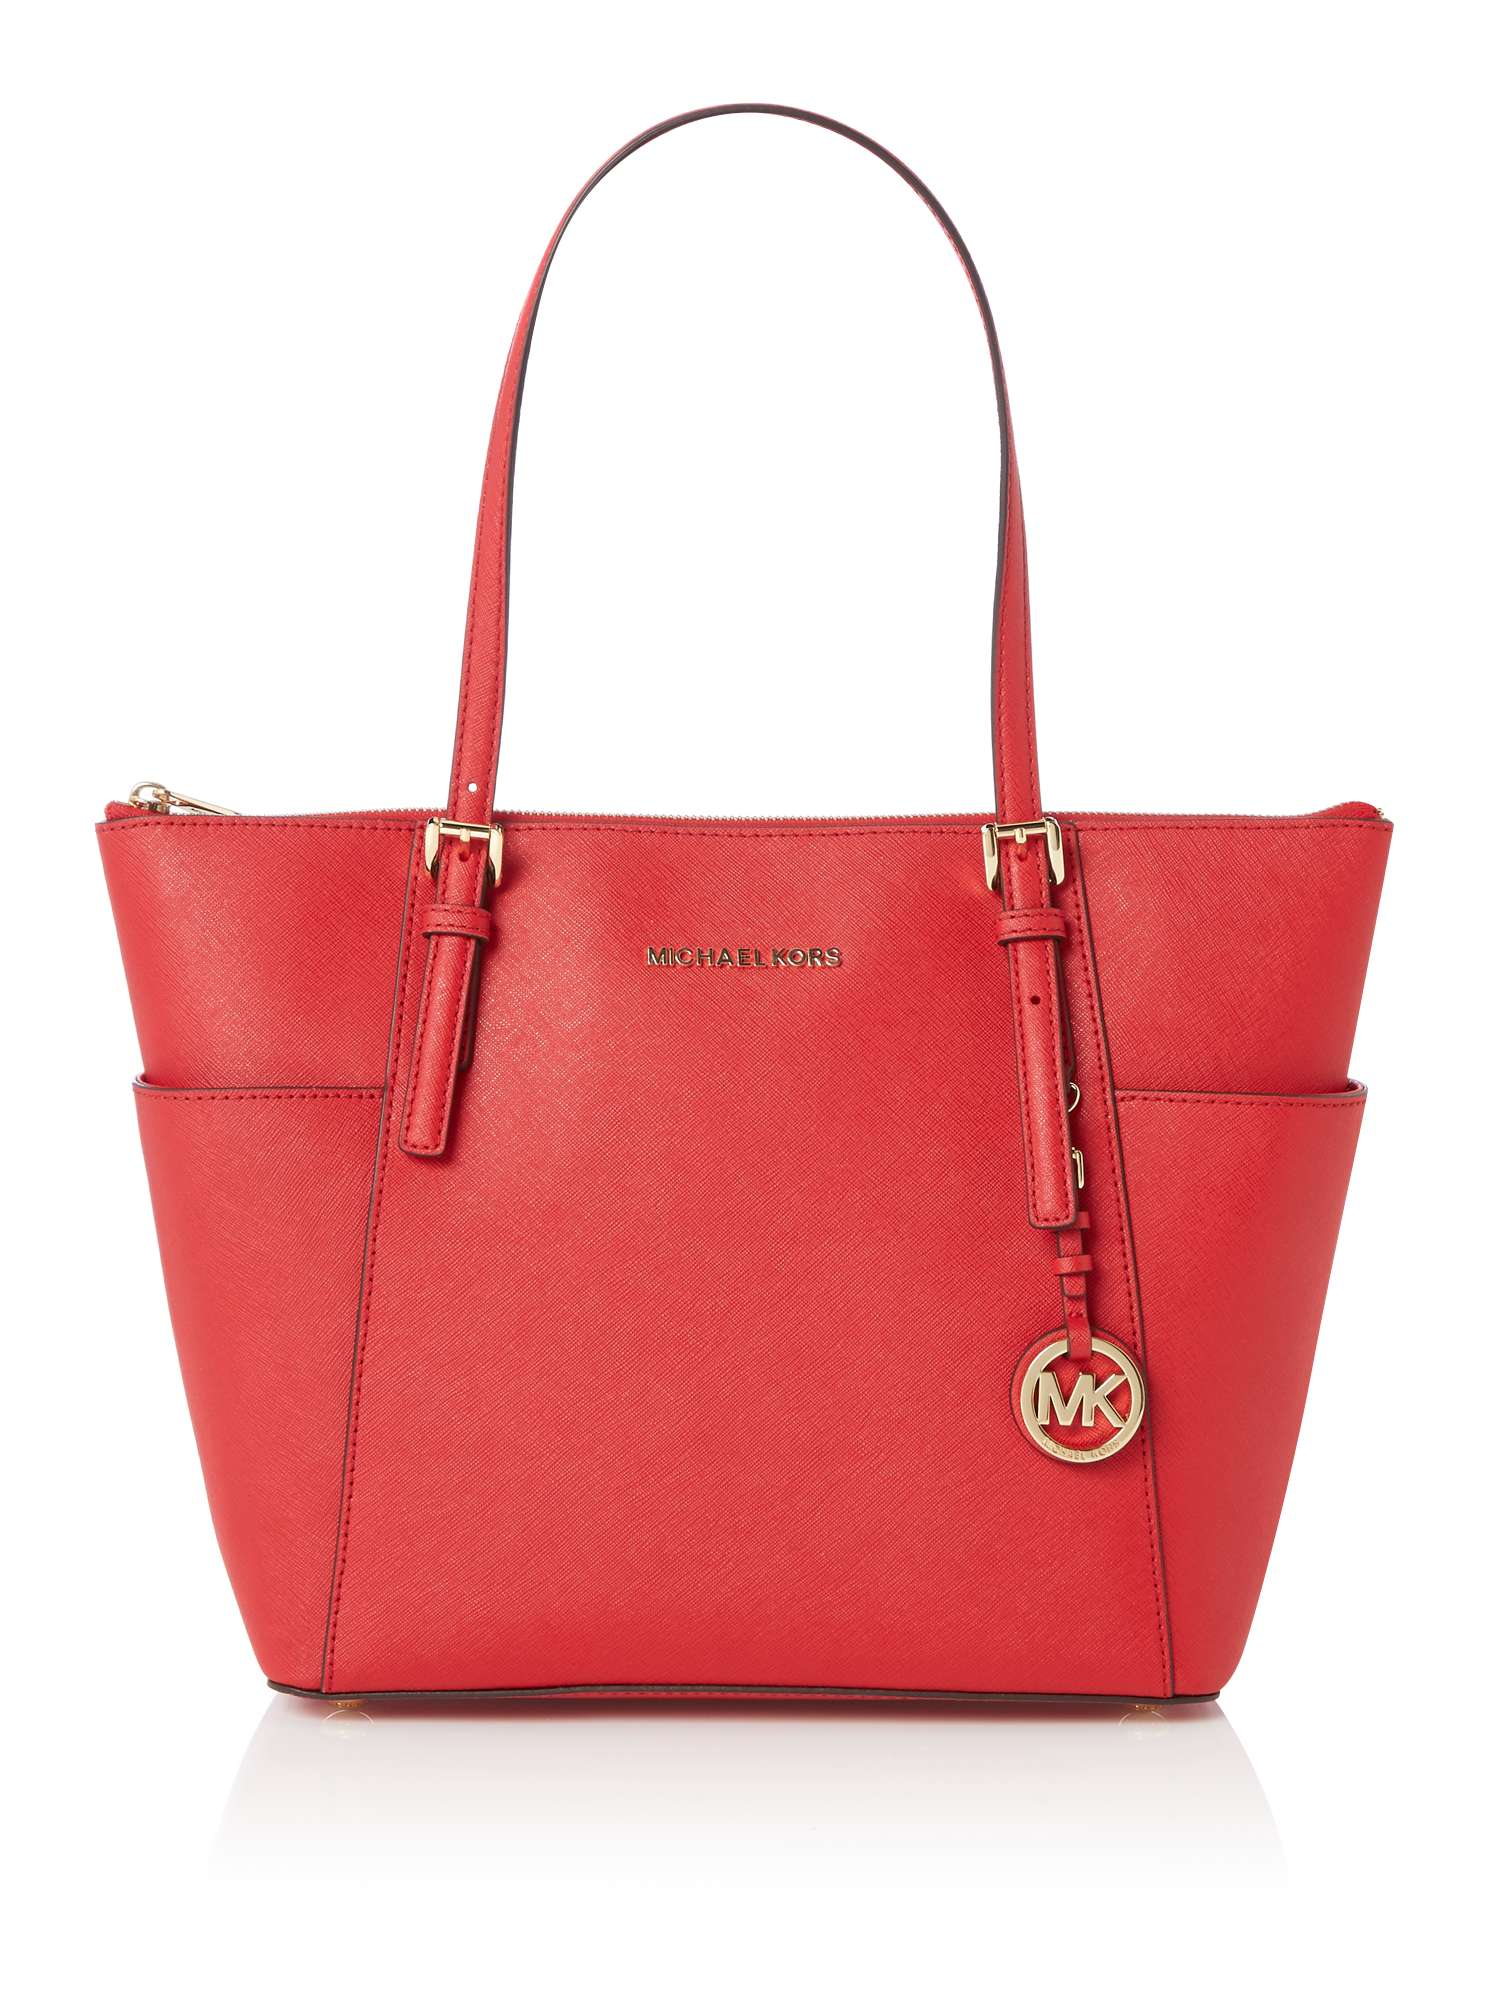 Michael kors bags in dubai - Michael Kors Jetset Item Top Zip Tote Bag